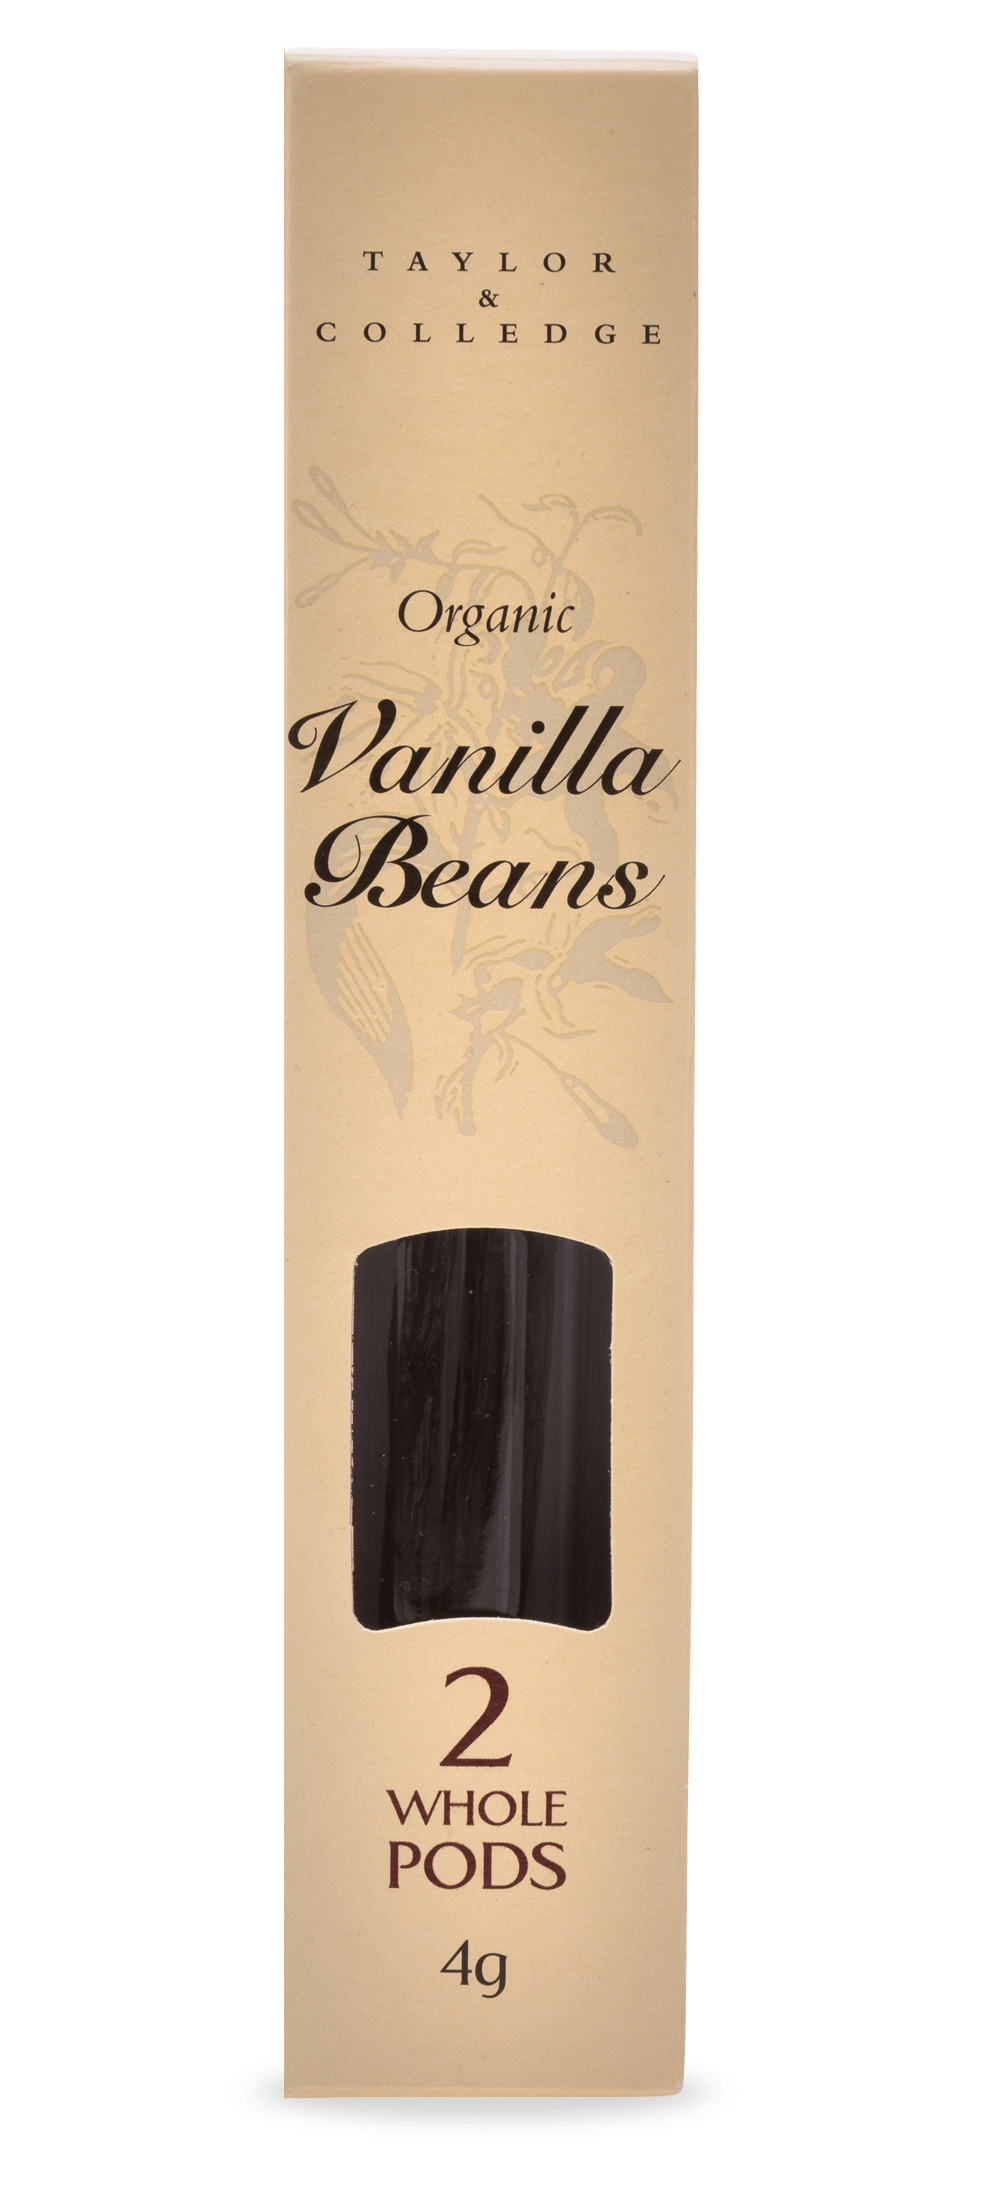 Organic Vanilla Beans (Two whole pods) - Taylor and Colledge